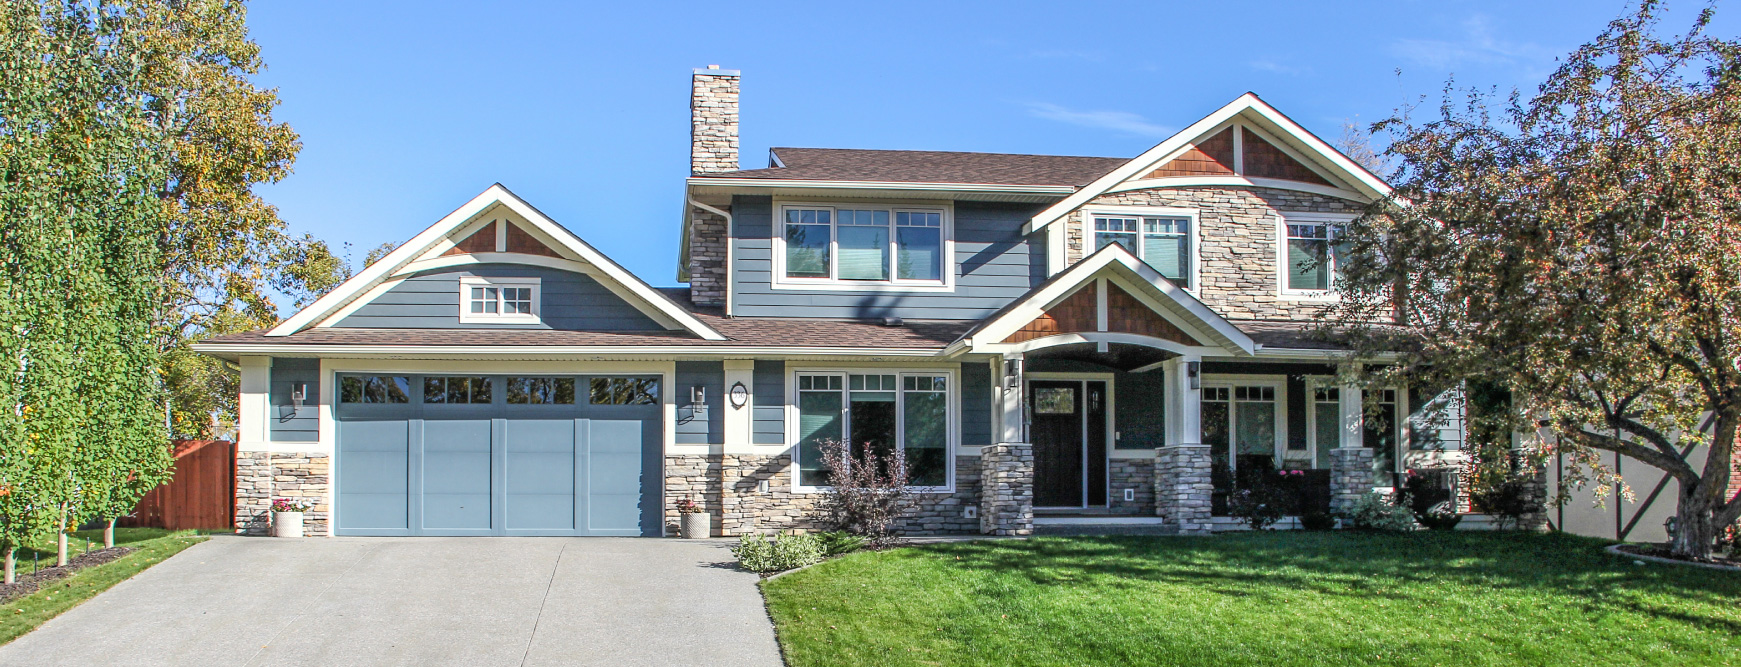 Exterior renovation with Hardi board siding and covered porch in Calgary